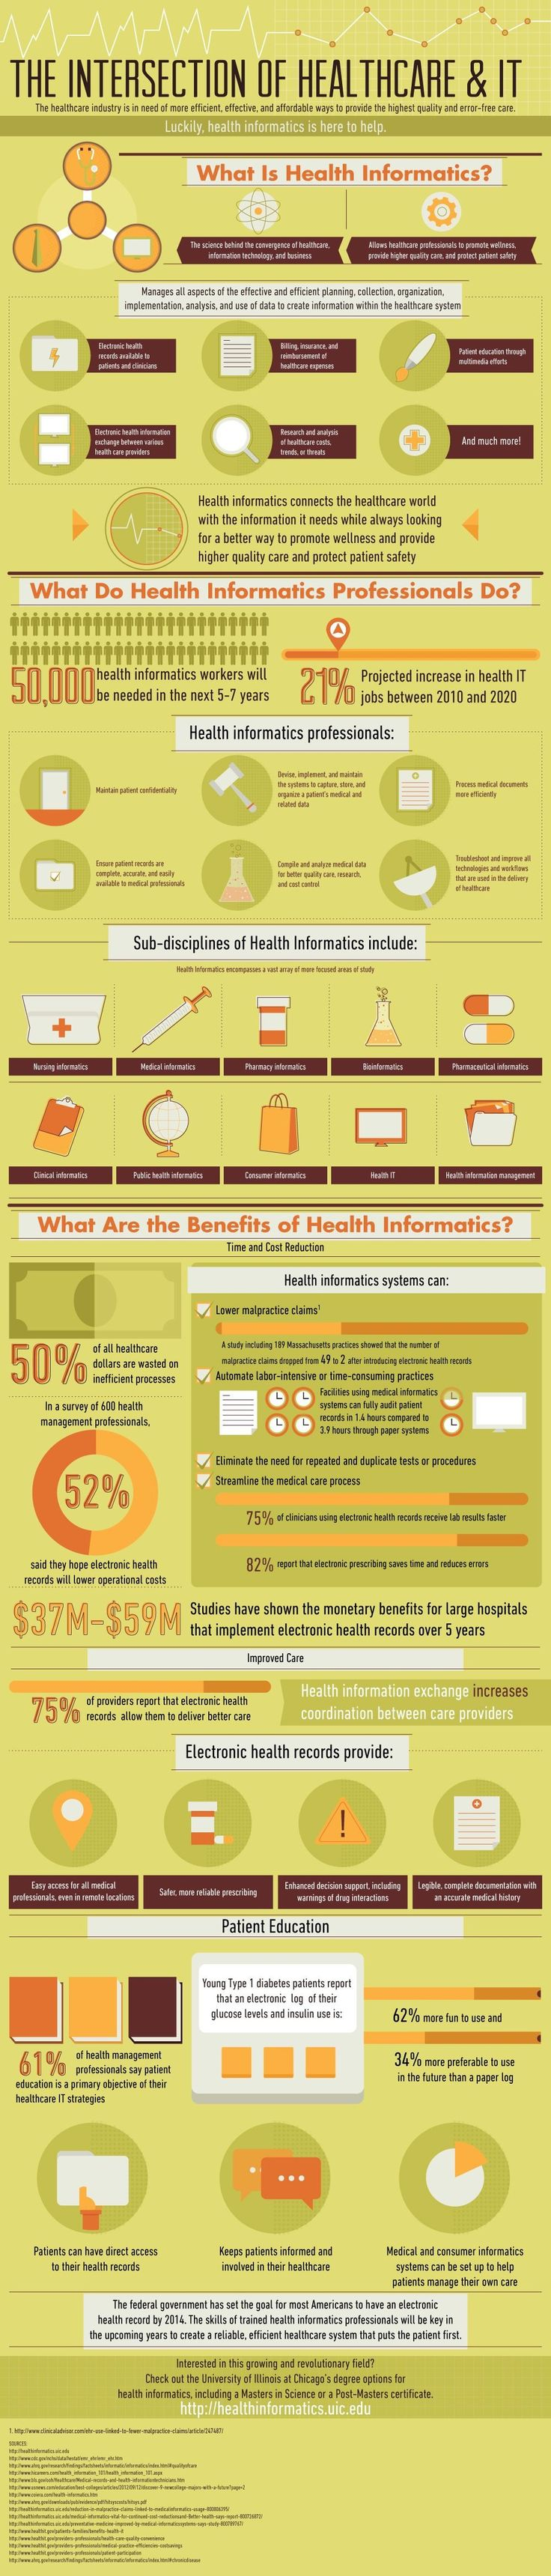 """Health informatics"" is the intersection of healthcare, information technology and business. Check out an infographic explaining this healthcare-IT mashup."